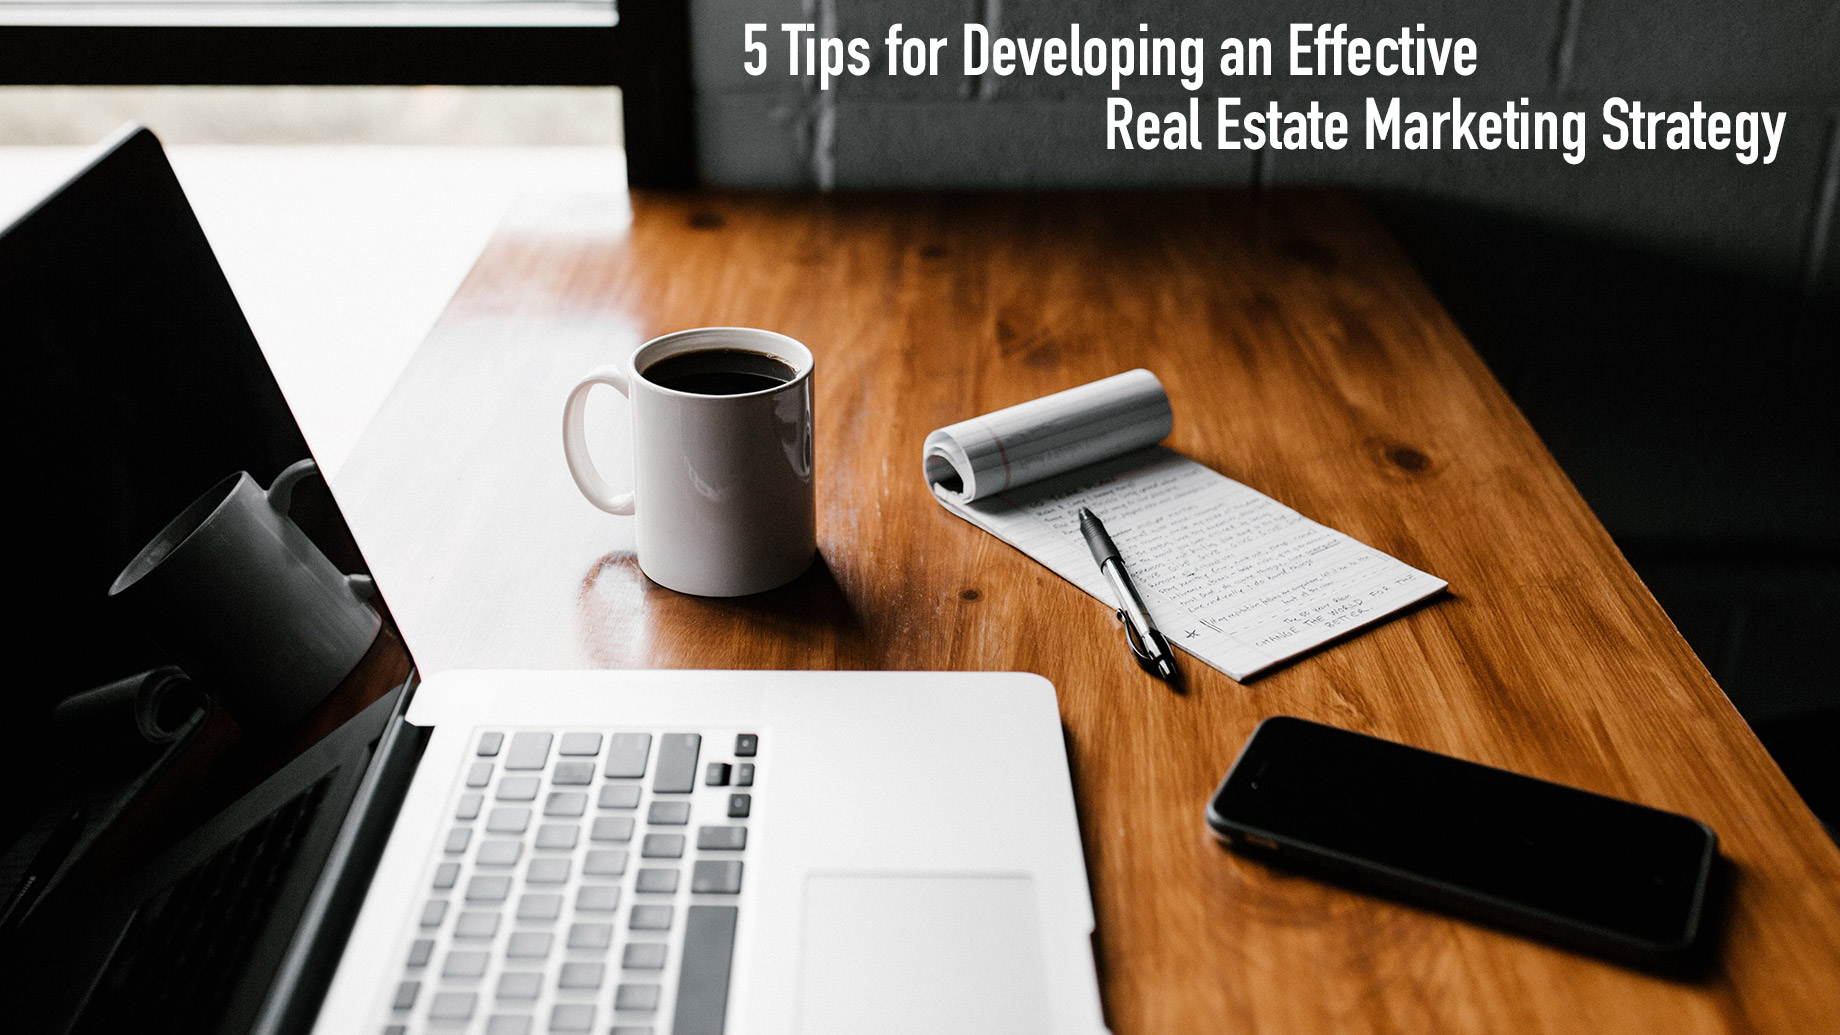 5 Tips for Developing an Effective Real Estate Marketing Strategy